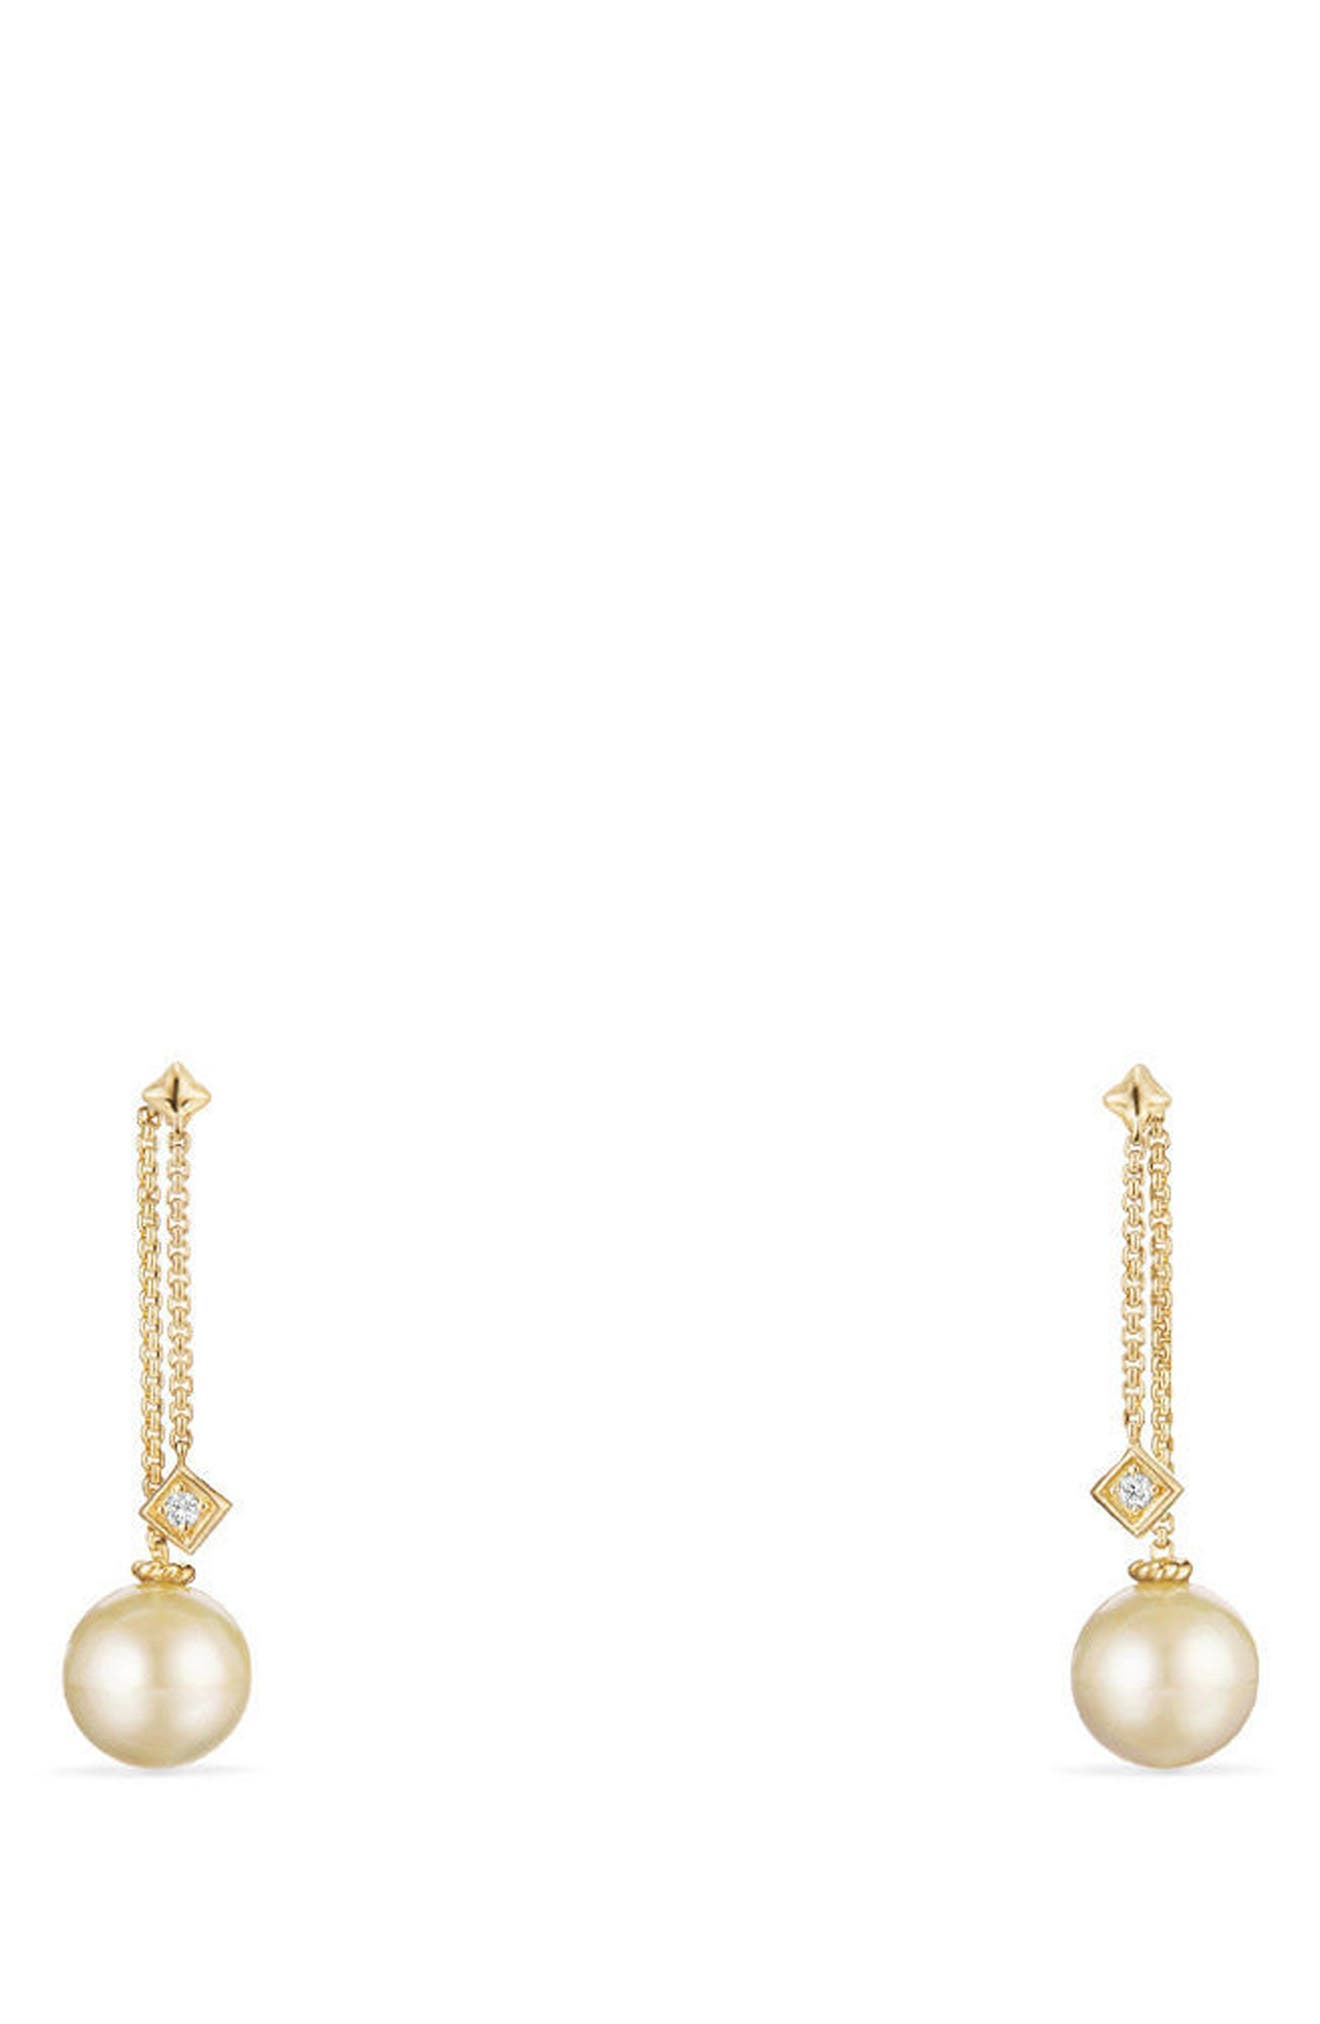 Solari Earrings with Diamonds in 18K Gold,                         Main,                         color, YELLOW GOLD/ SOUTH SEA YELLOW